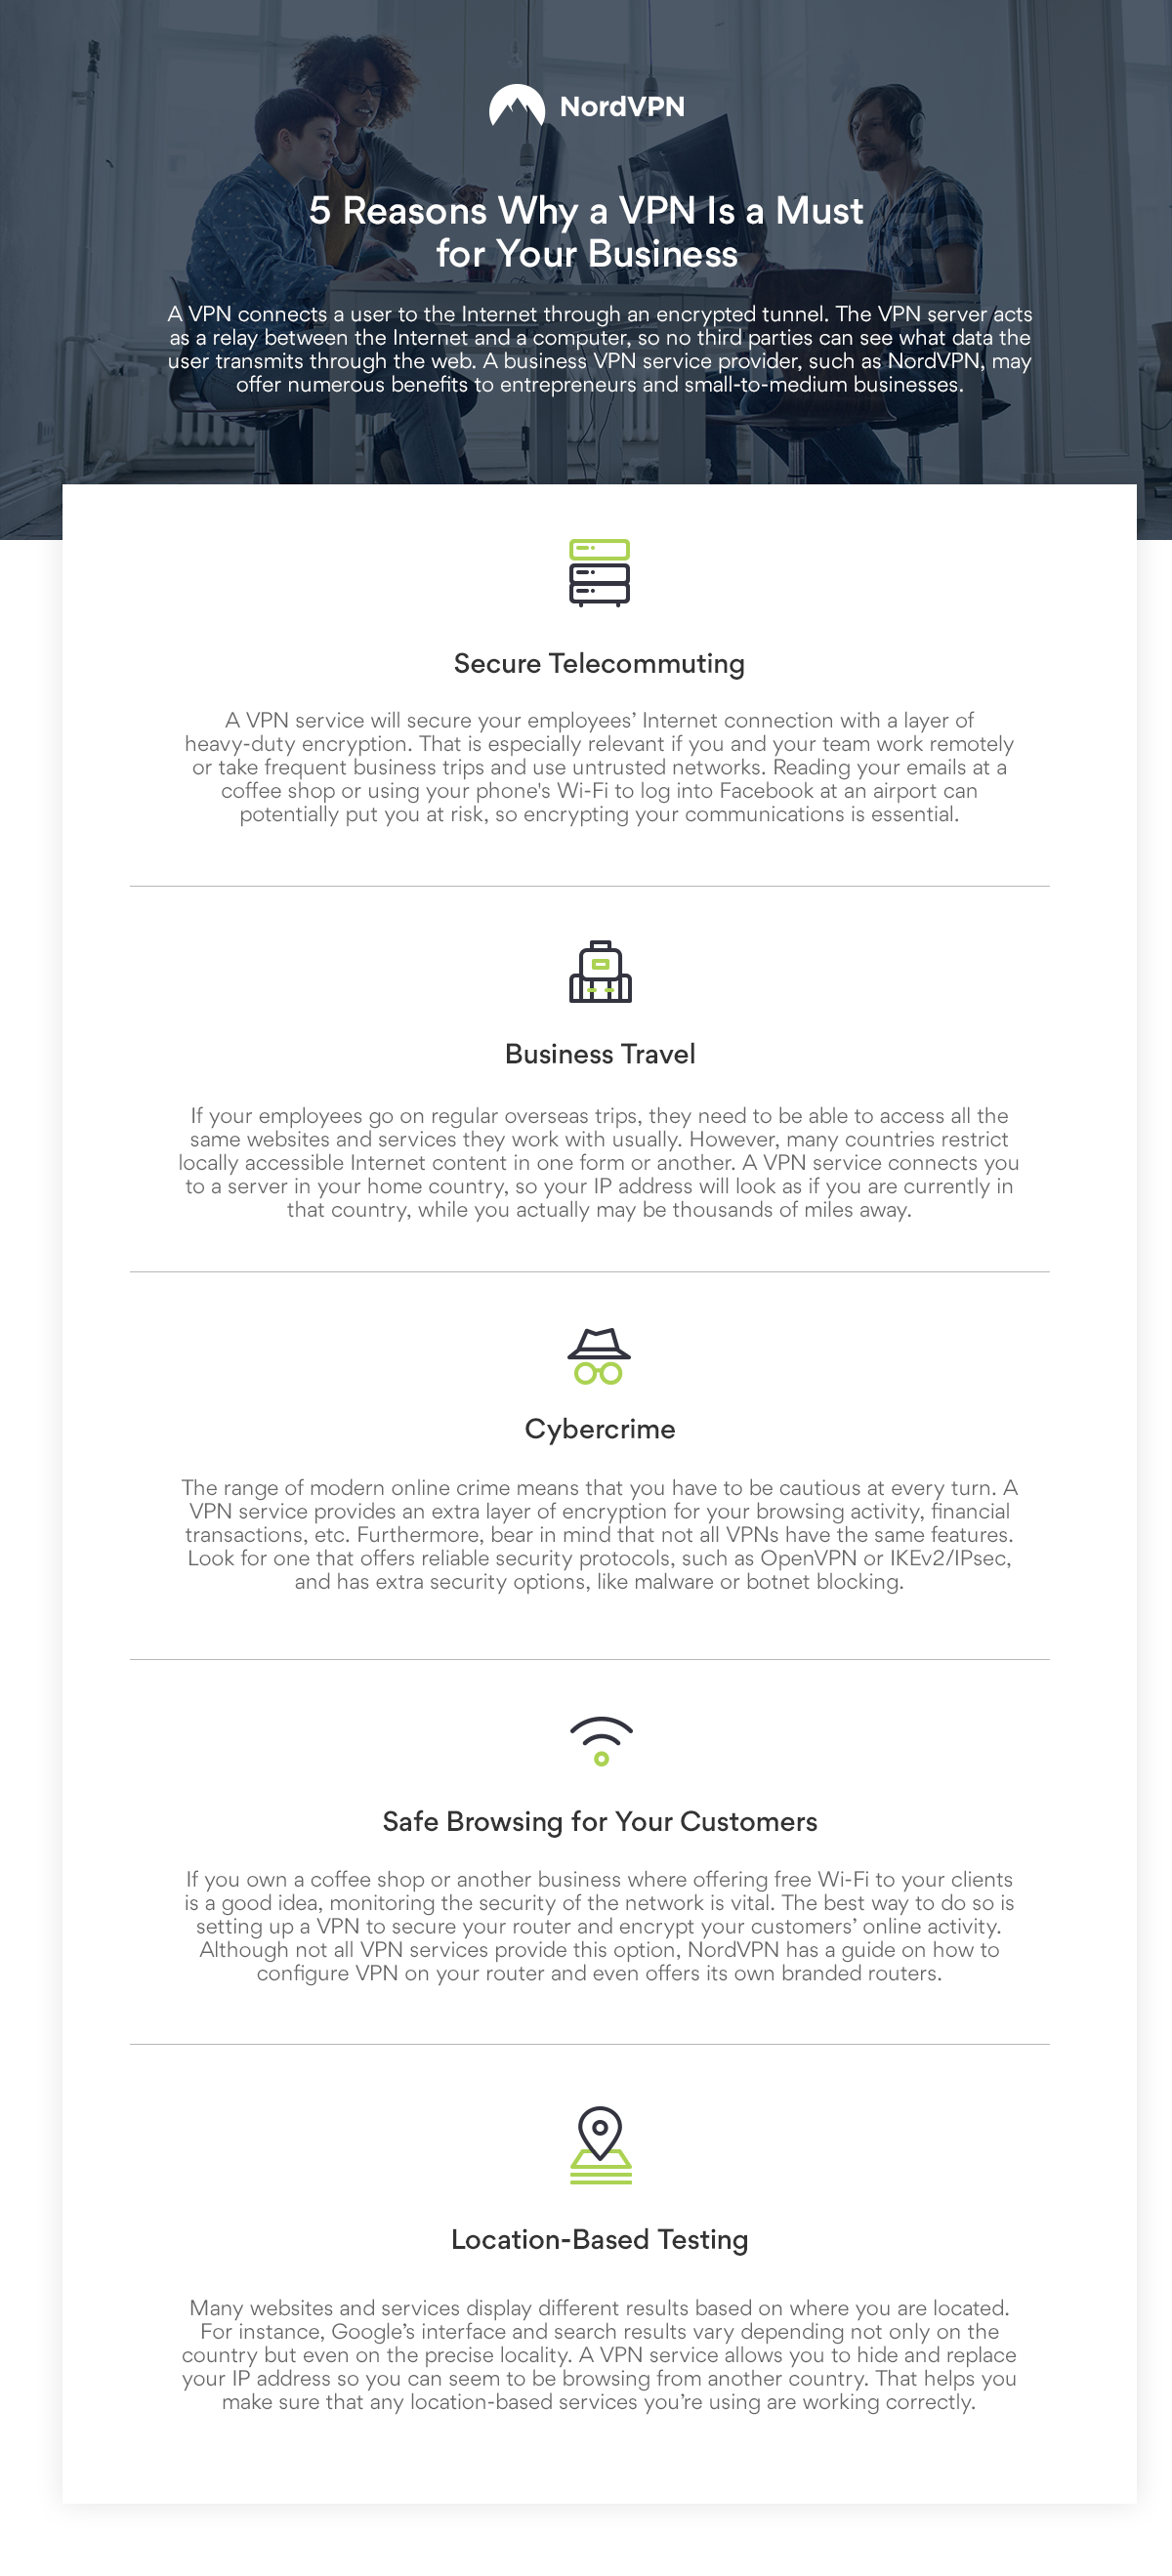 NordVPN infographic - 5 Reasons a VPN is a Must